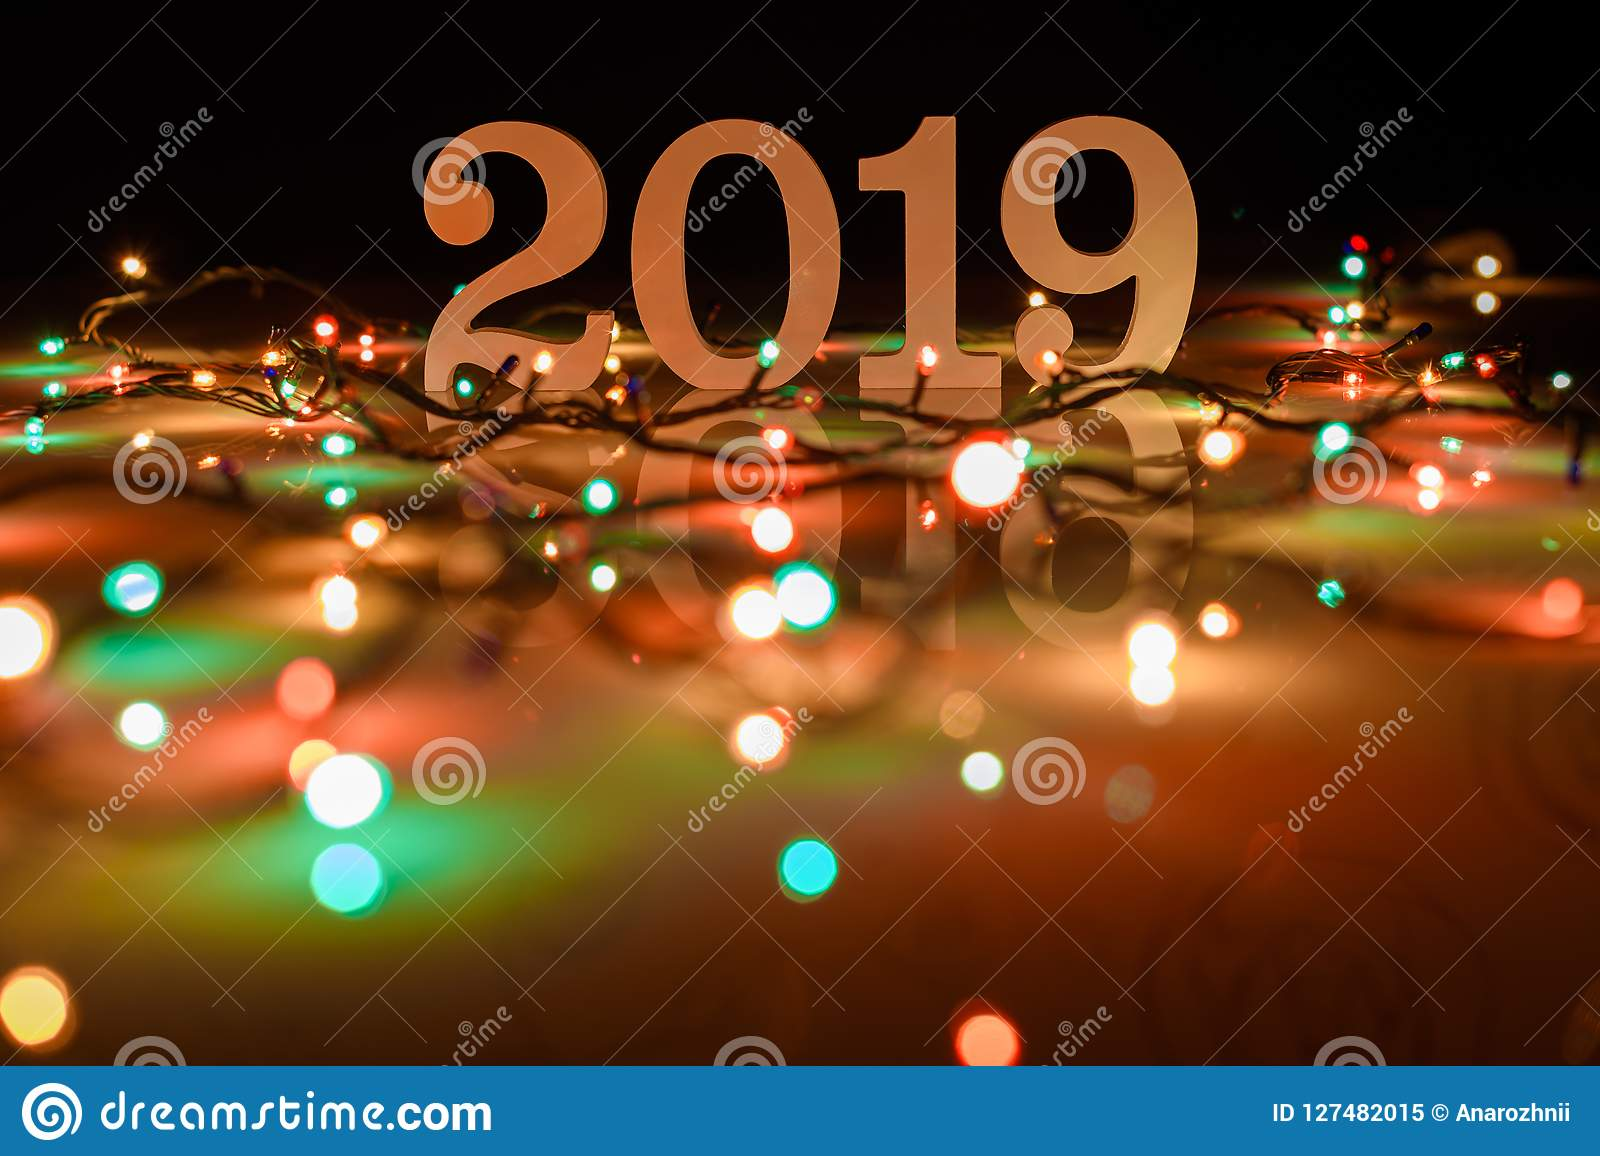 2019 Christmas Background Happy New Year 2019, Christmas And New Year Background Stock Image